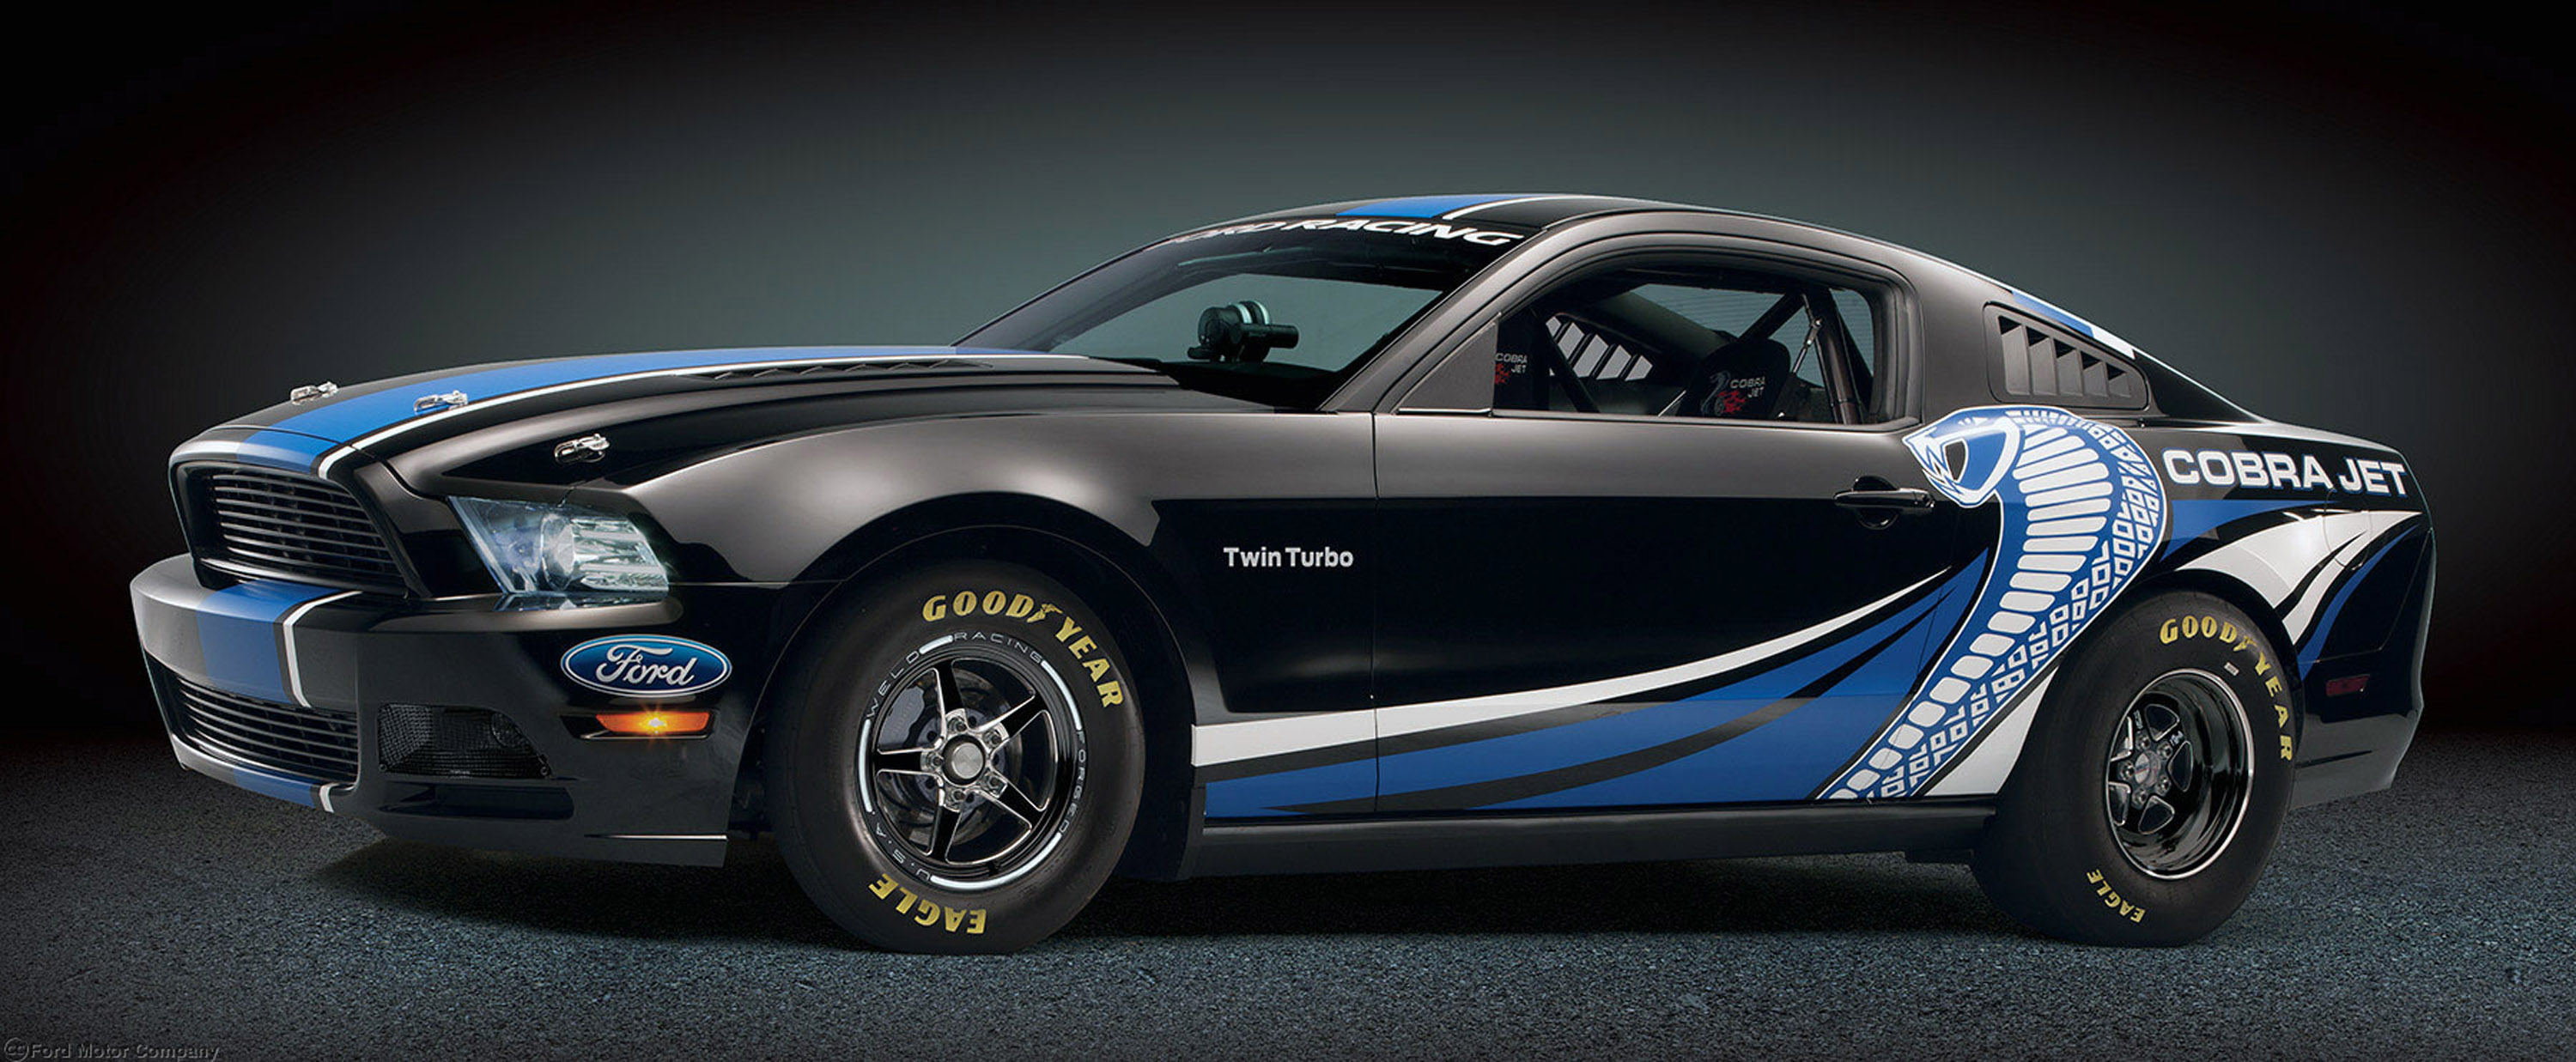 25 Ford Mustang Cobra Jet Twin Turbo HD Wallpapers Background 3000x1237